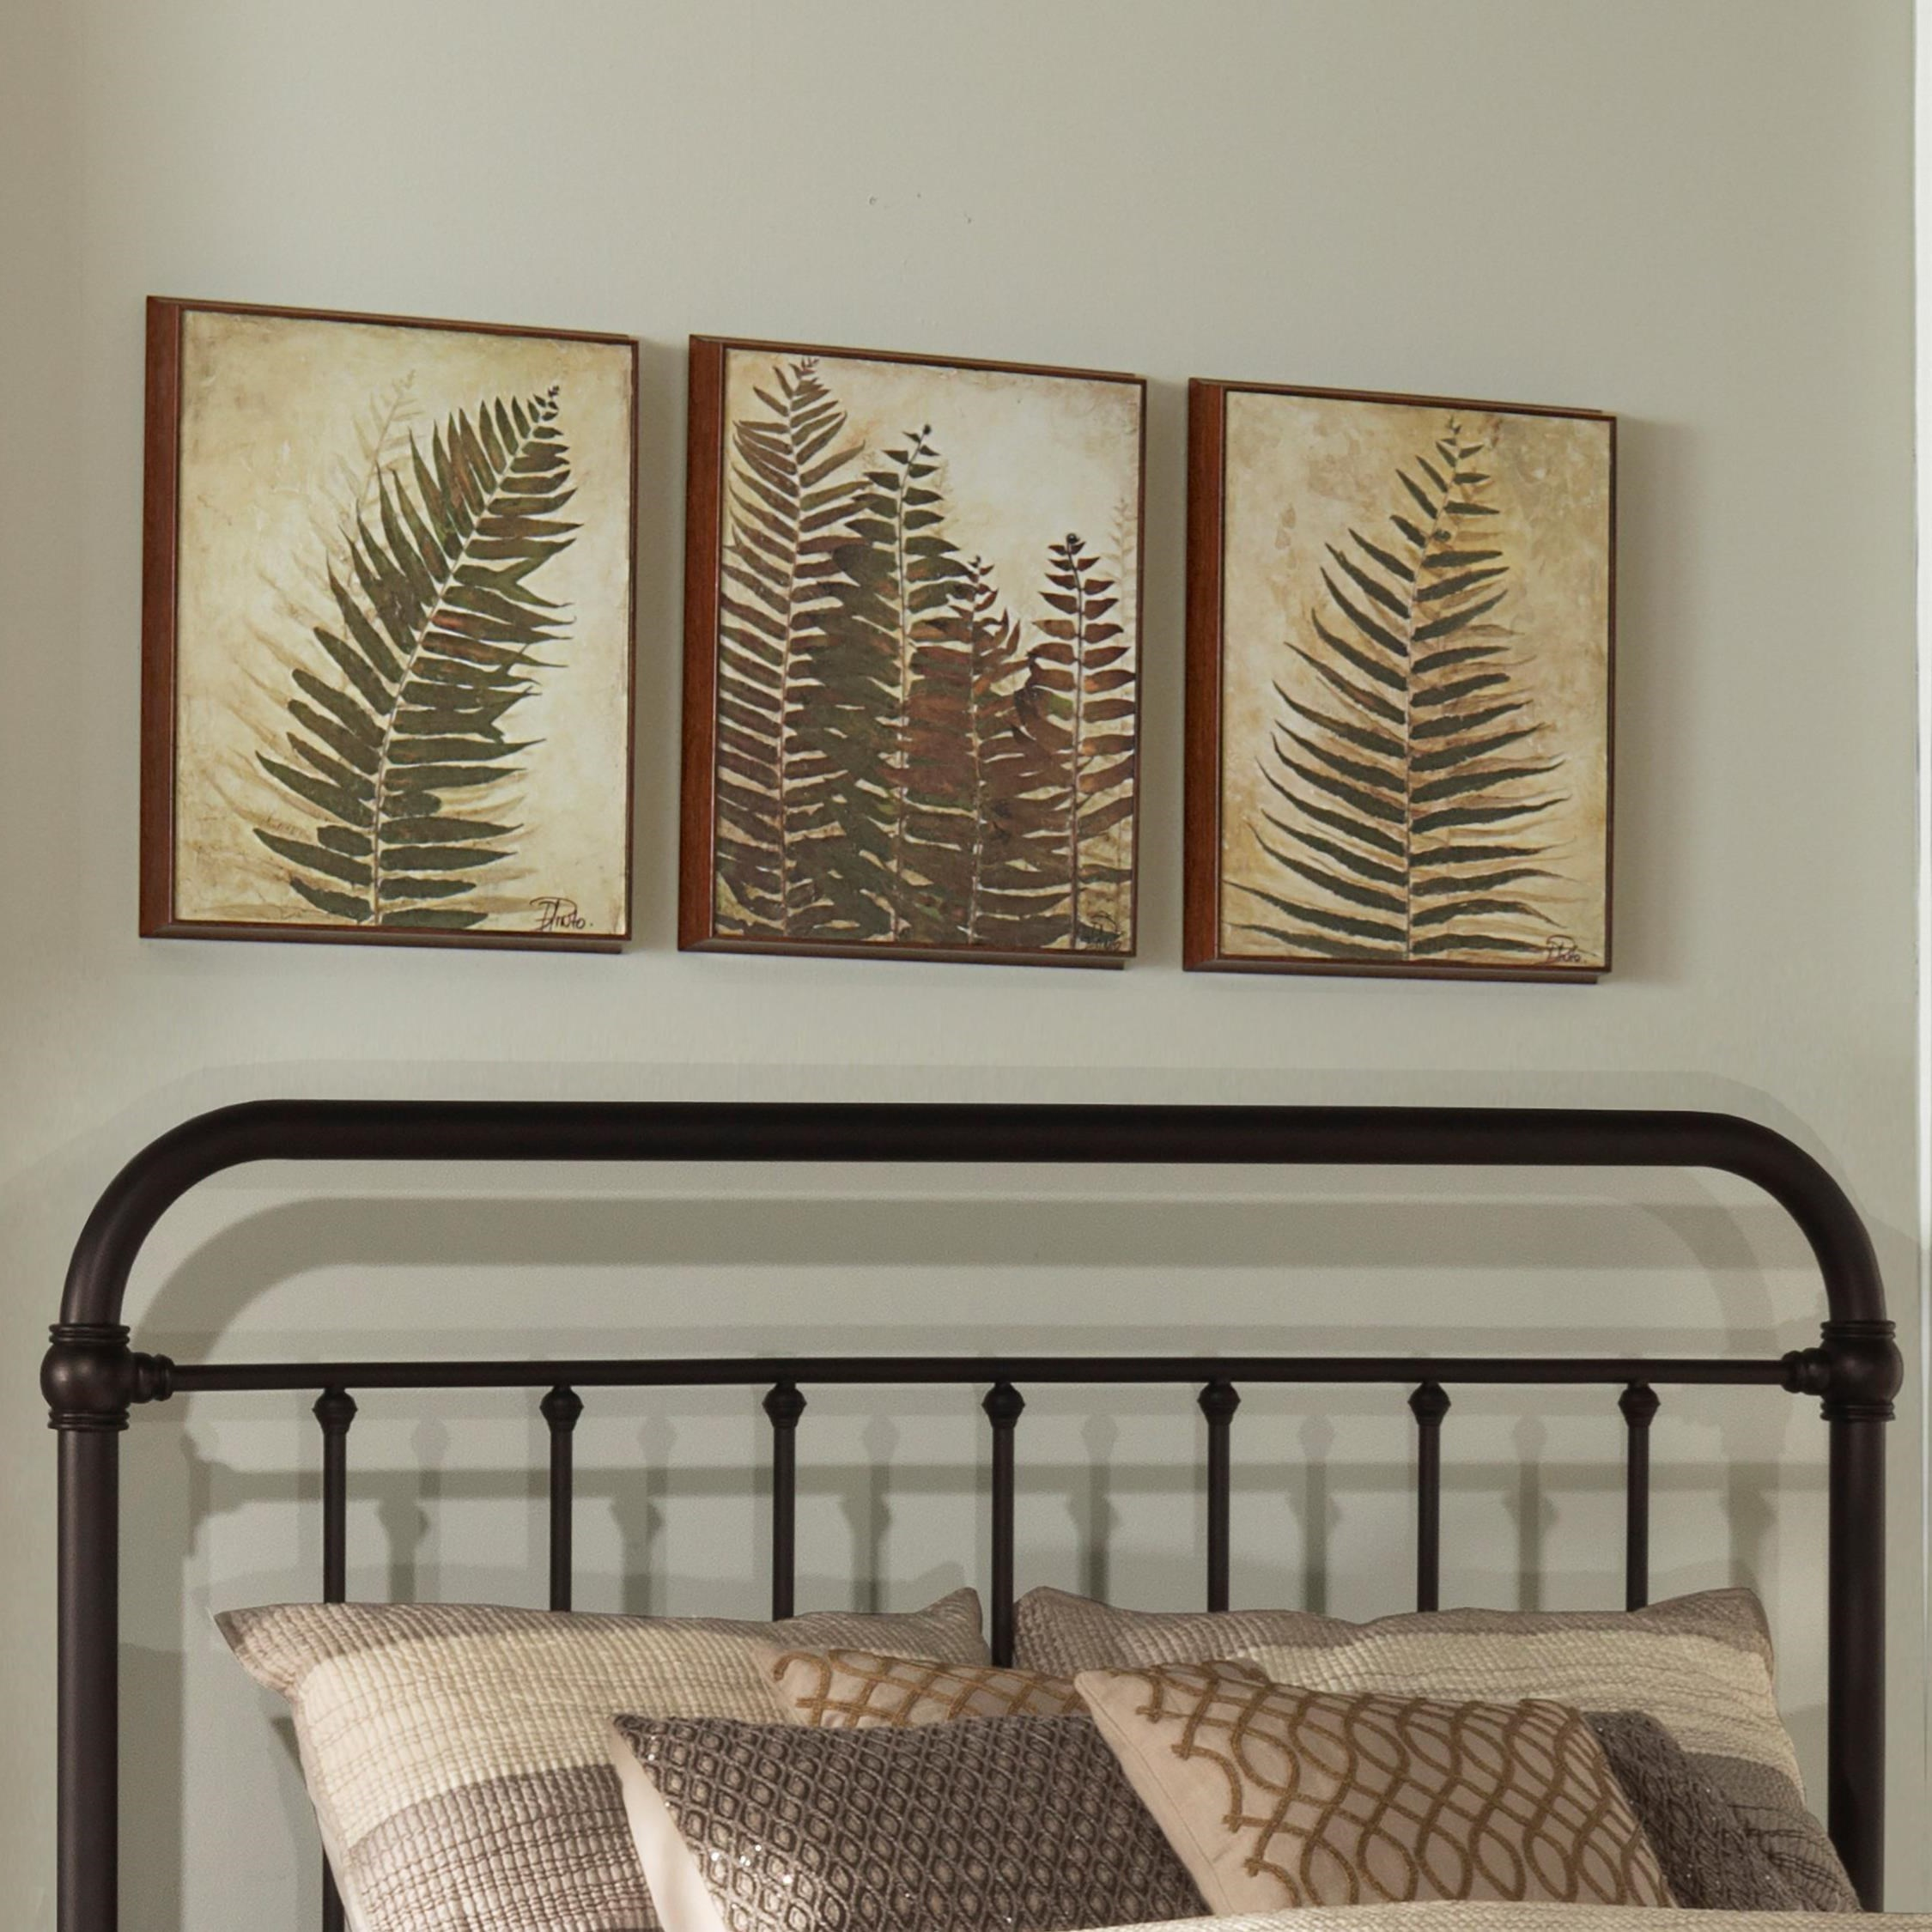 Metal Beds Classic Twin Headboard by Hillsdale at Johnny Janosik